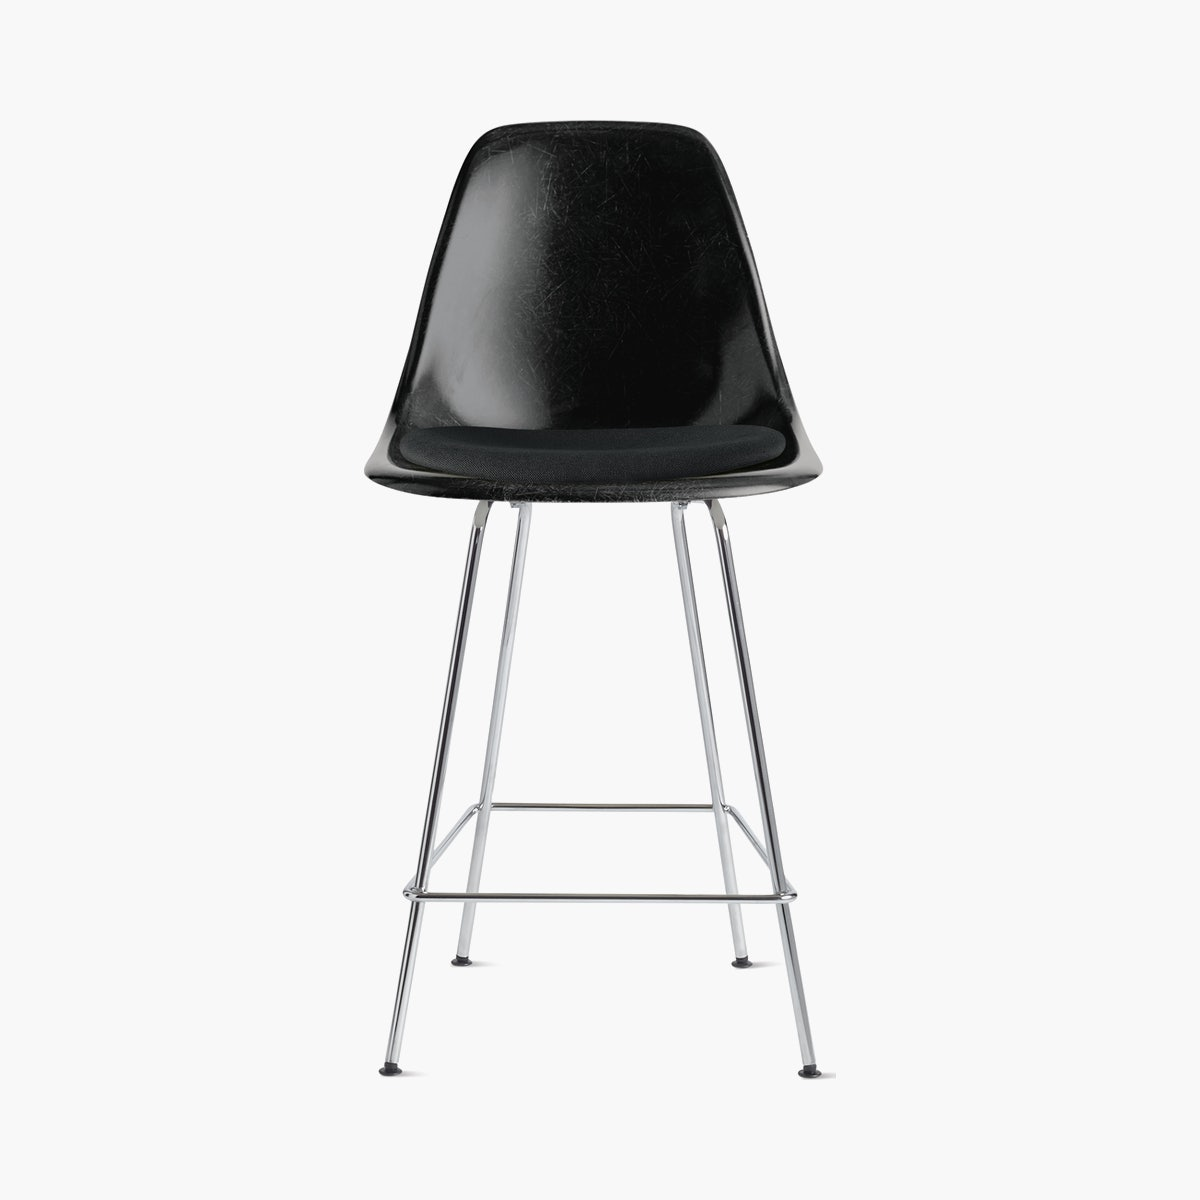 Eames Molded Fiberglass Stool with Seat Pad